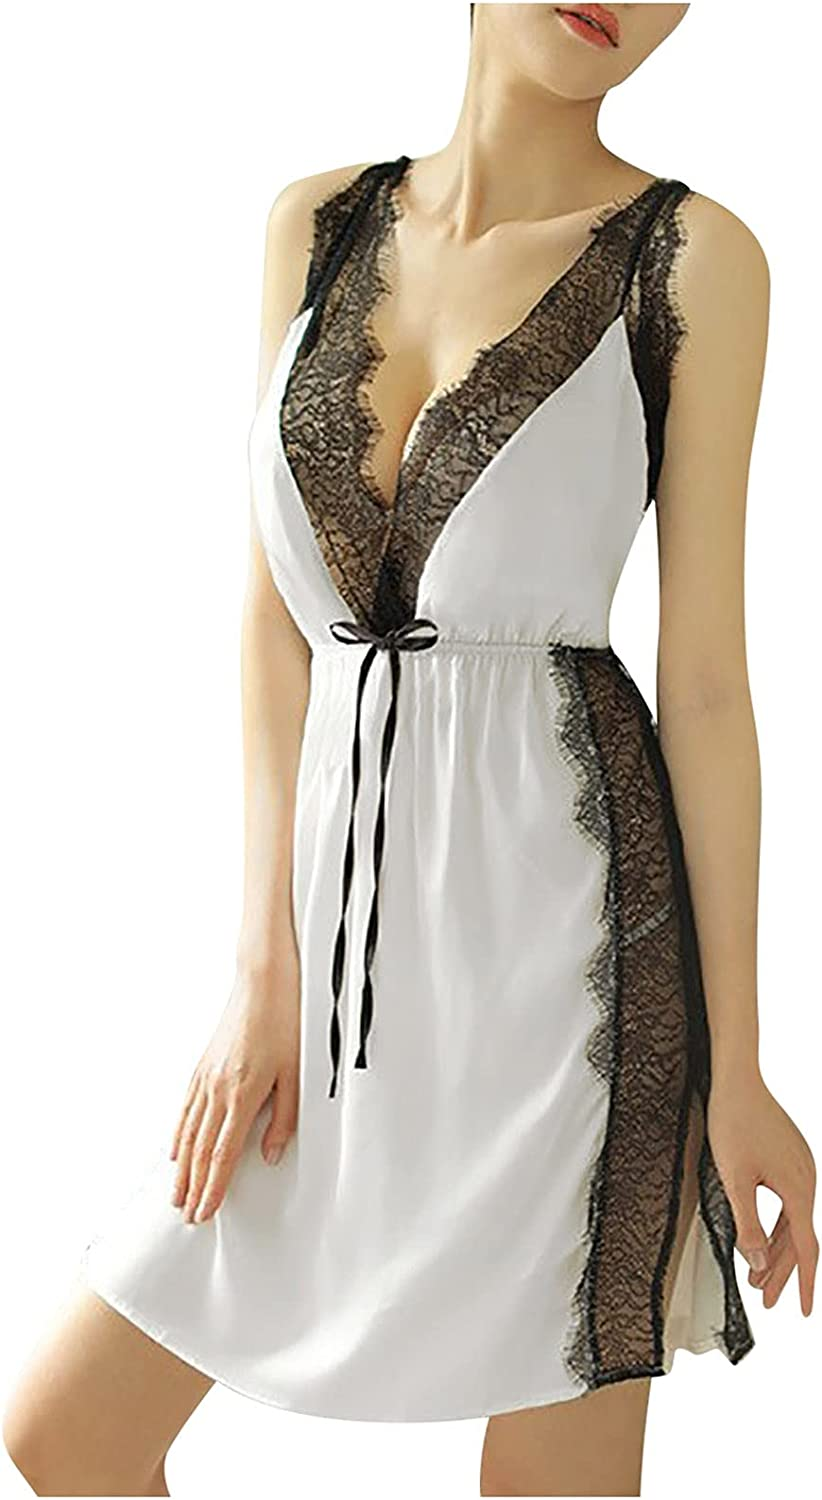 Lingerie Set for Women Sleepwear Ba Lace Sexy Nightgown Sales for sale Gifts